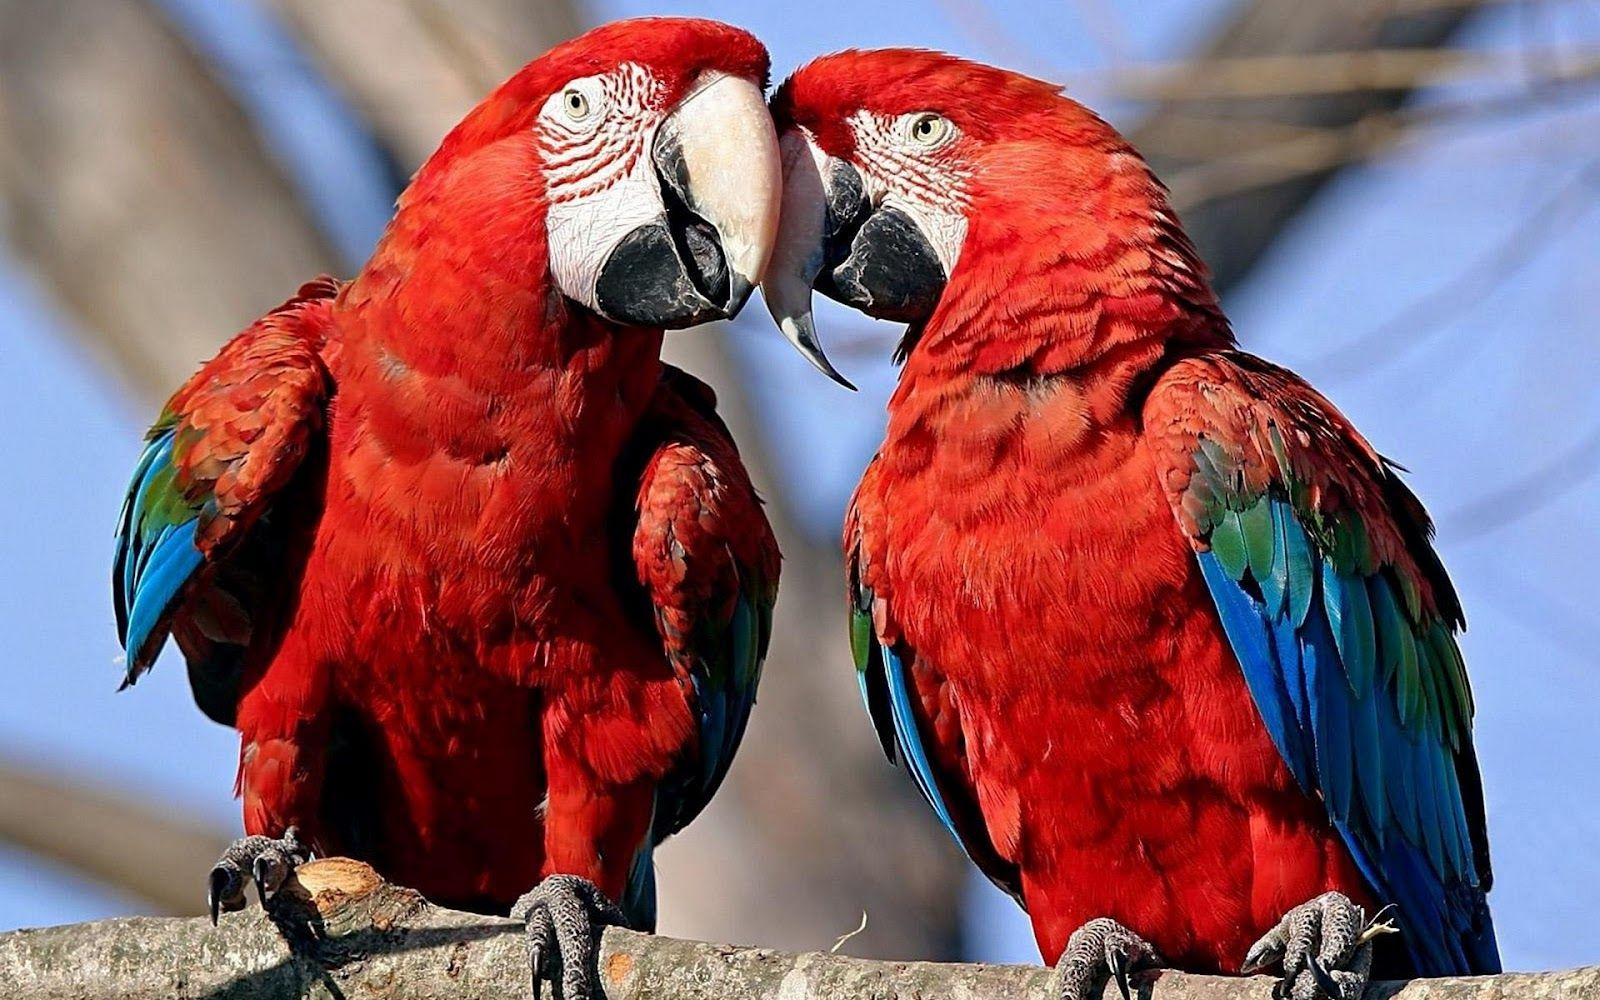 Two Red Parrots Cuddling On A Branch Hd Animals Wallpapers Parrot Animal Wallpaper Macaw Hd wallpaper red and blue parrots